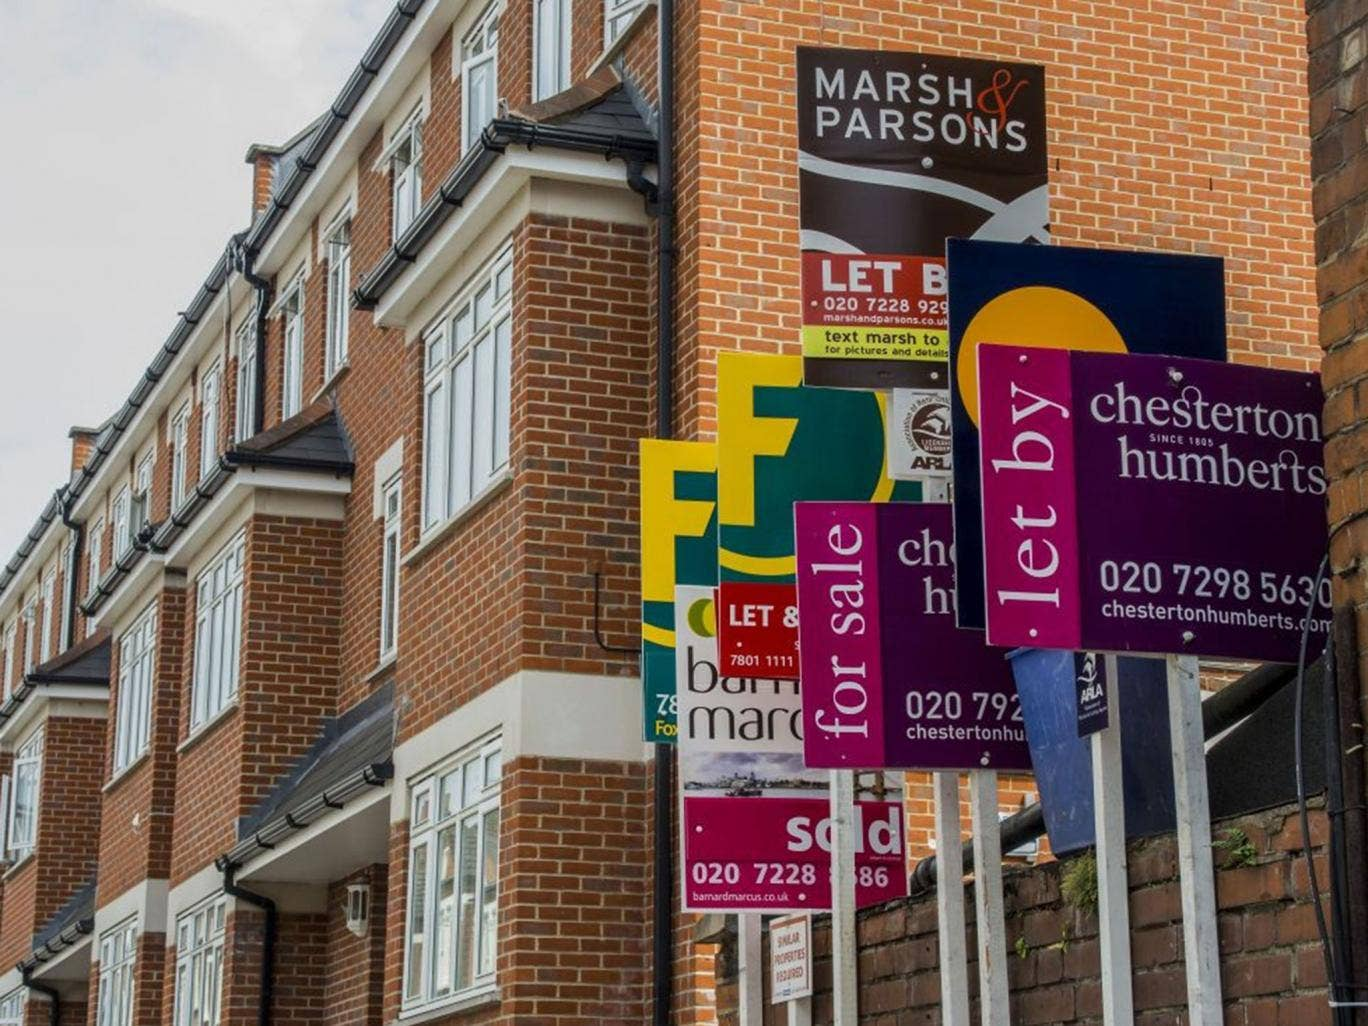 Landlords say they will pass on costs to tenants